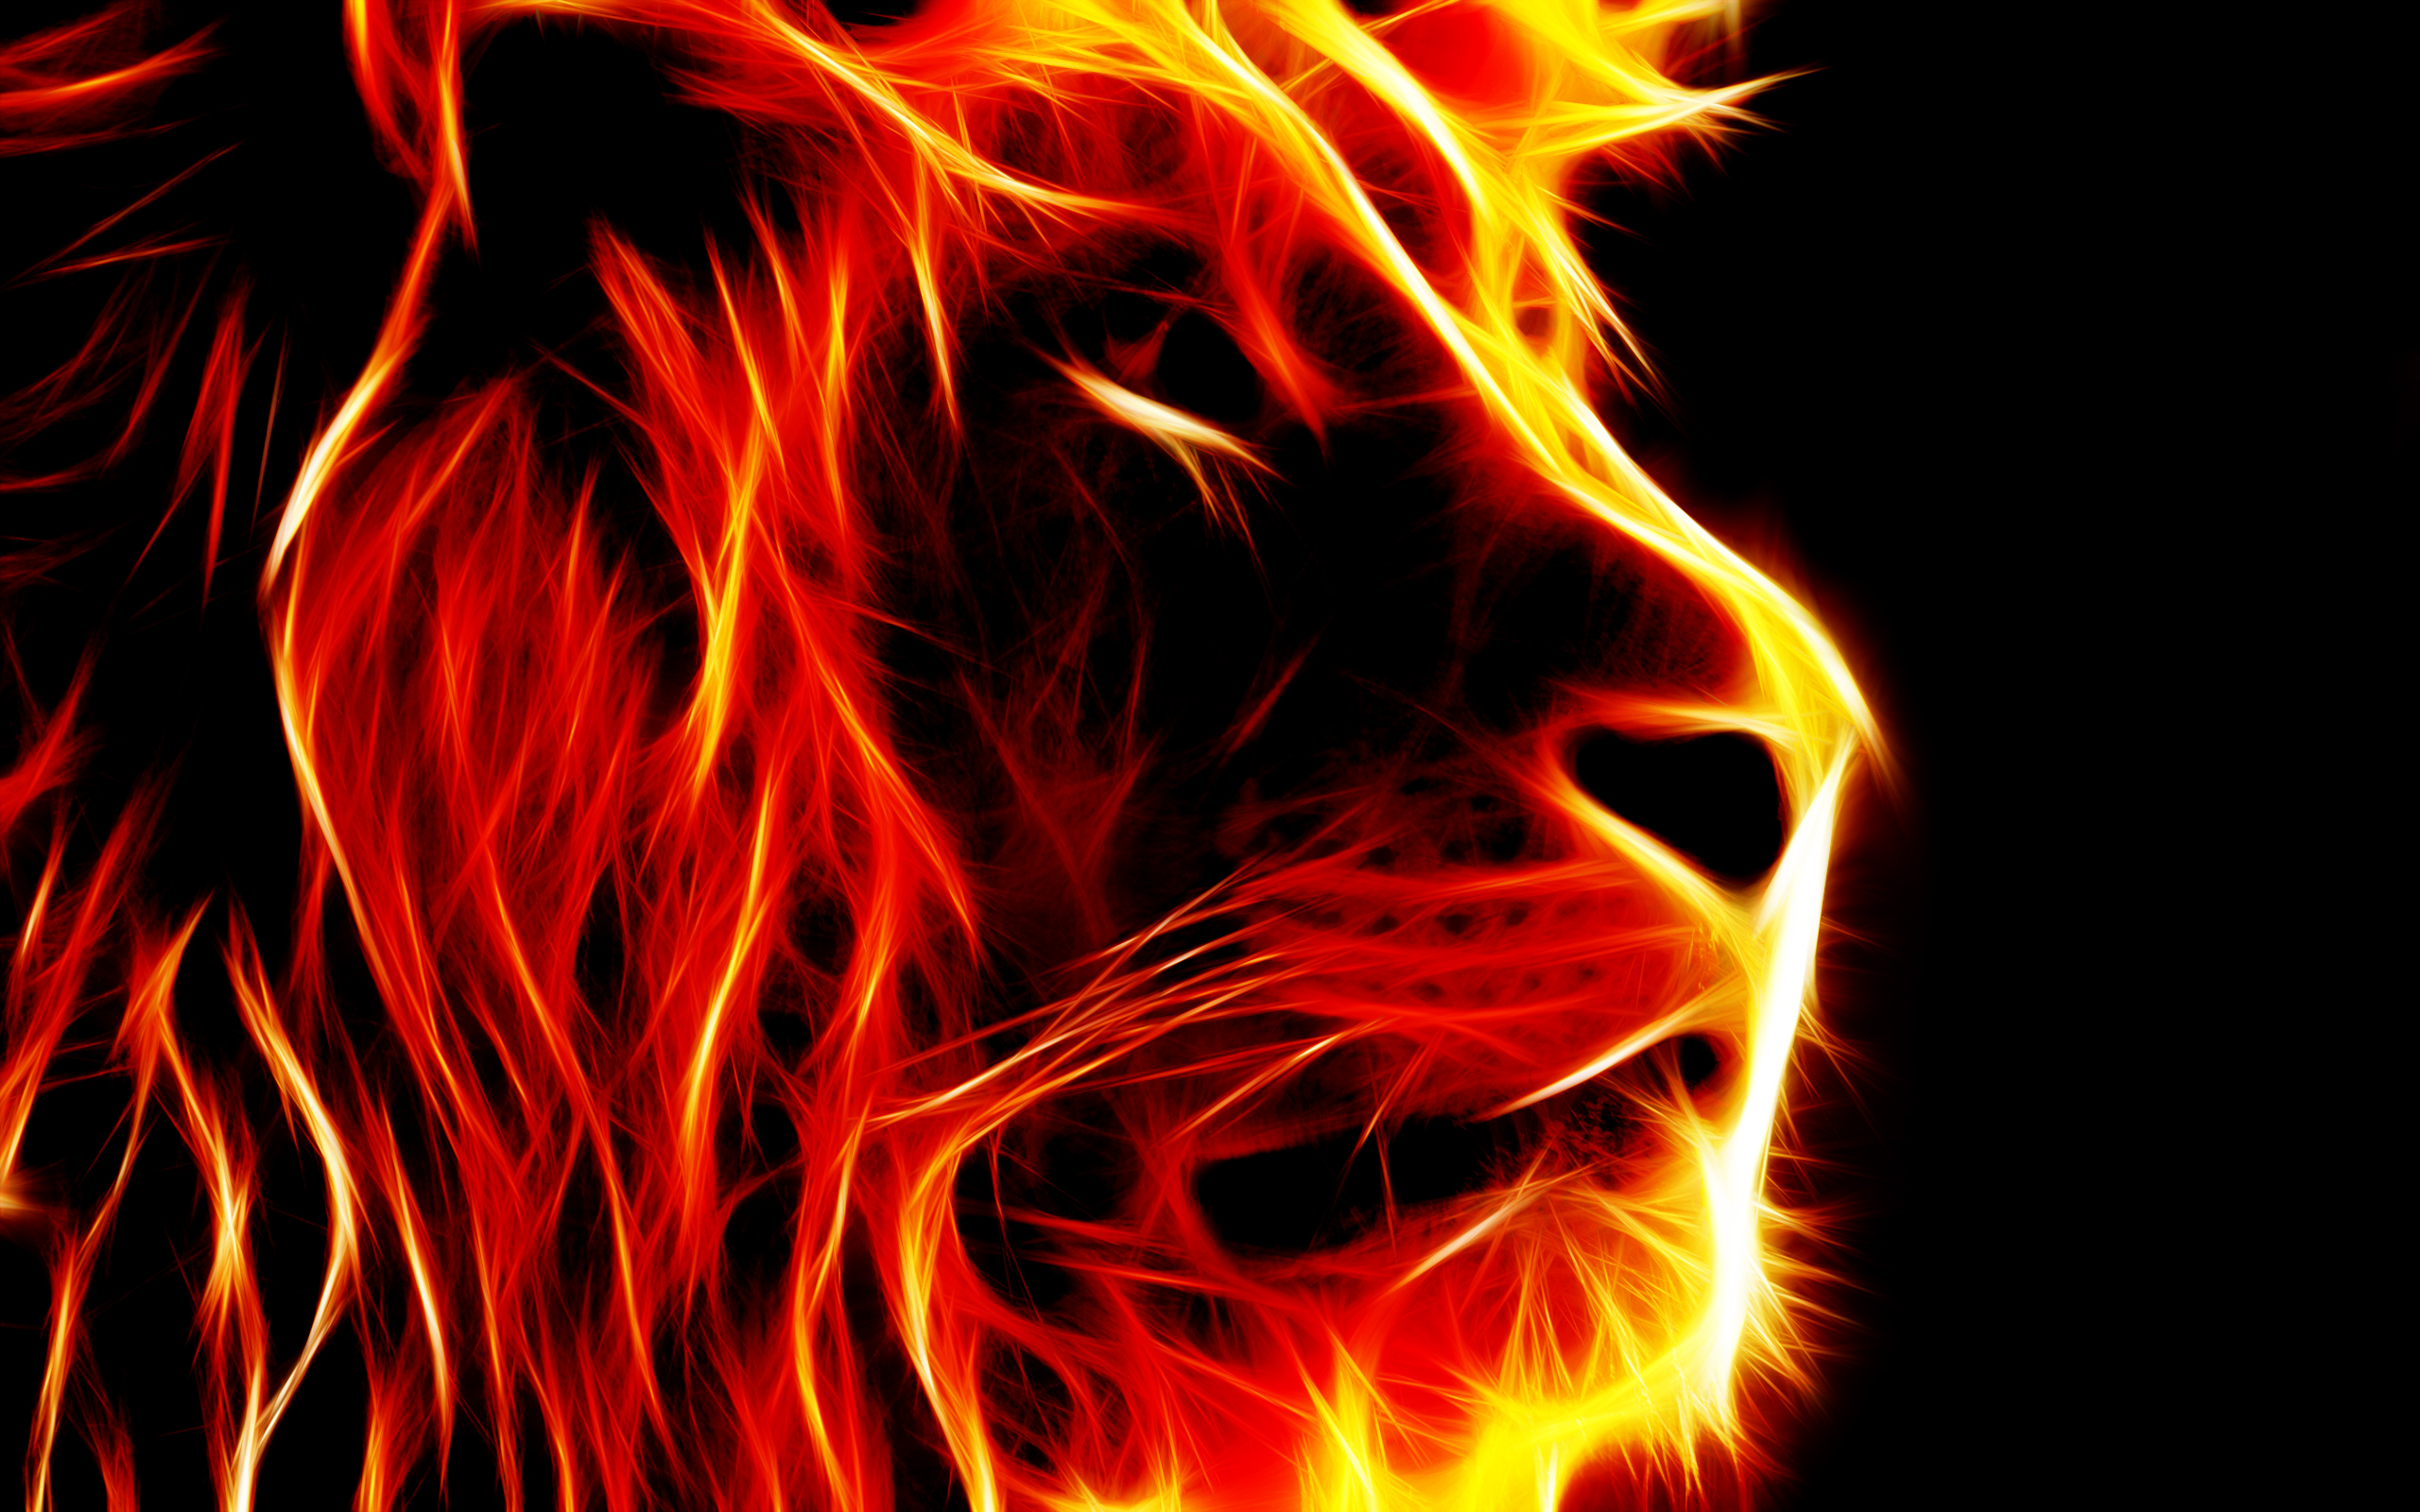 Lion shaped pictures of fire  free pictures 2560x1600